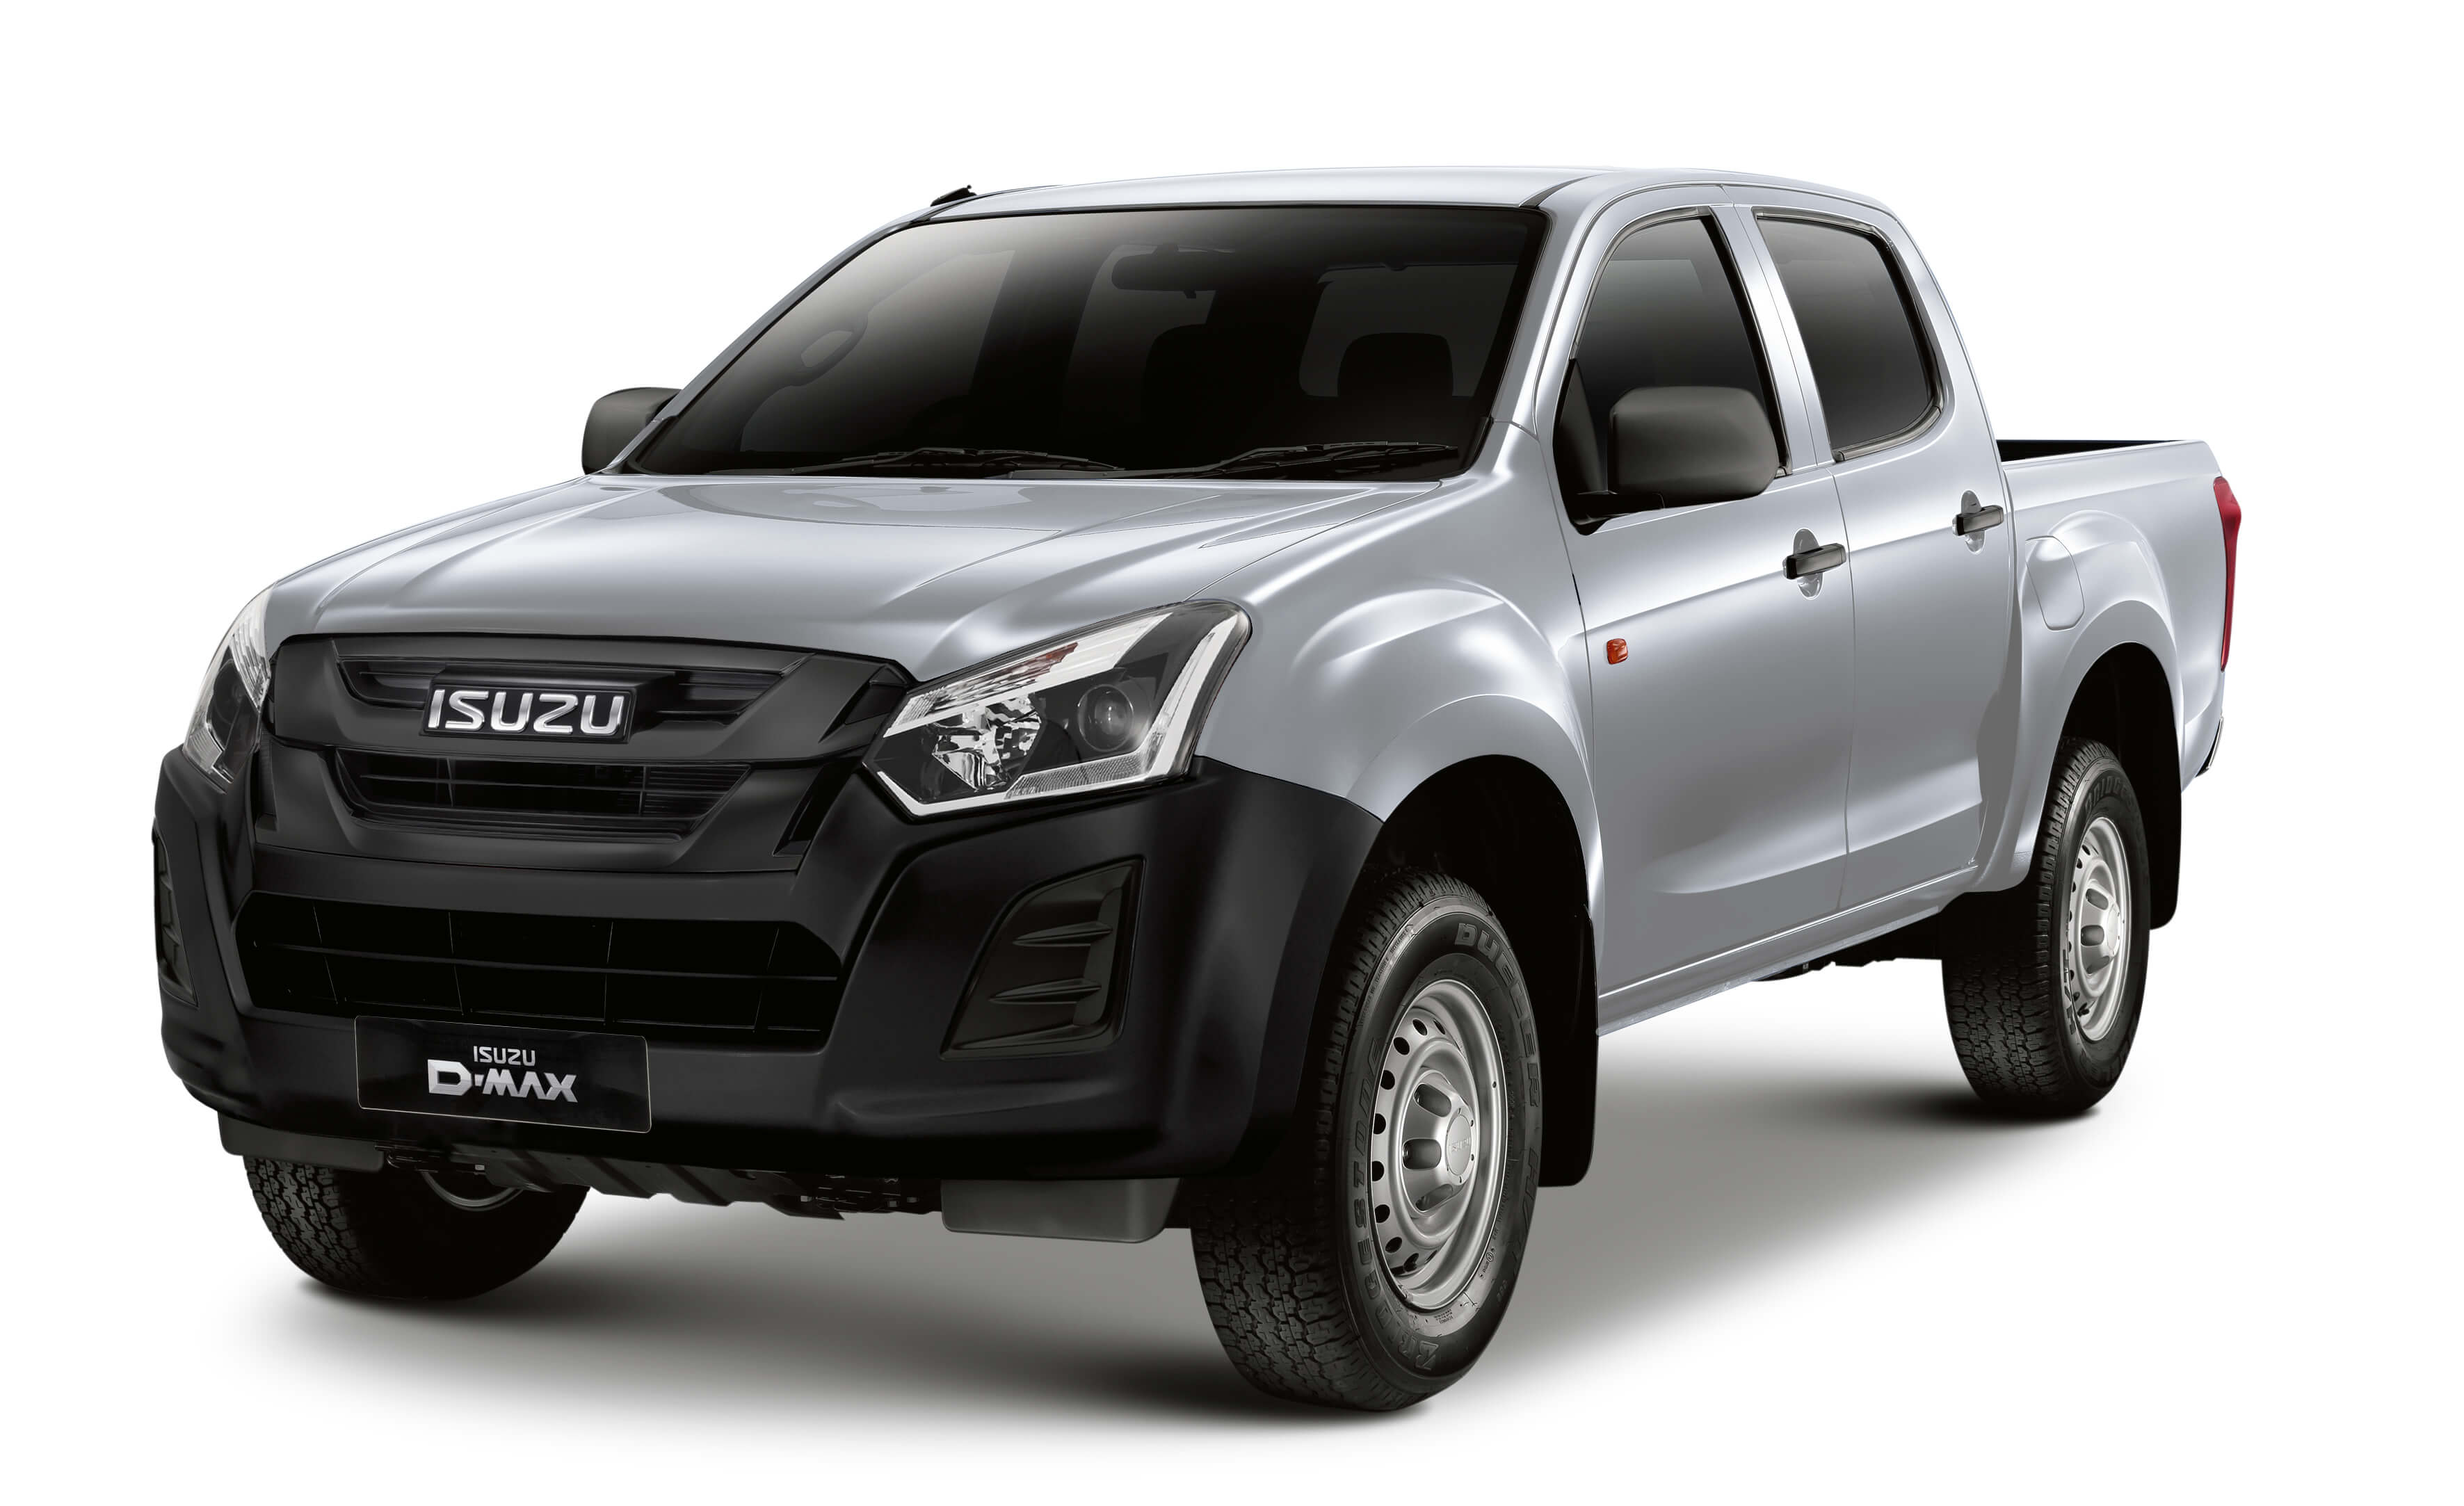 Isuzu D-Max Utility double cab in silver front view